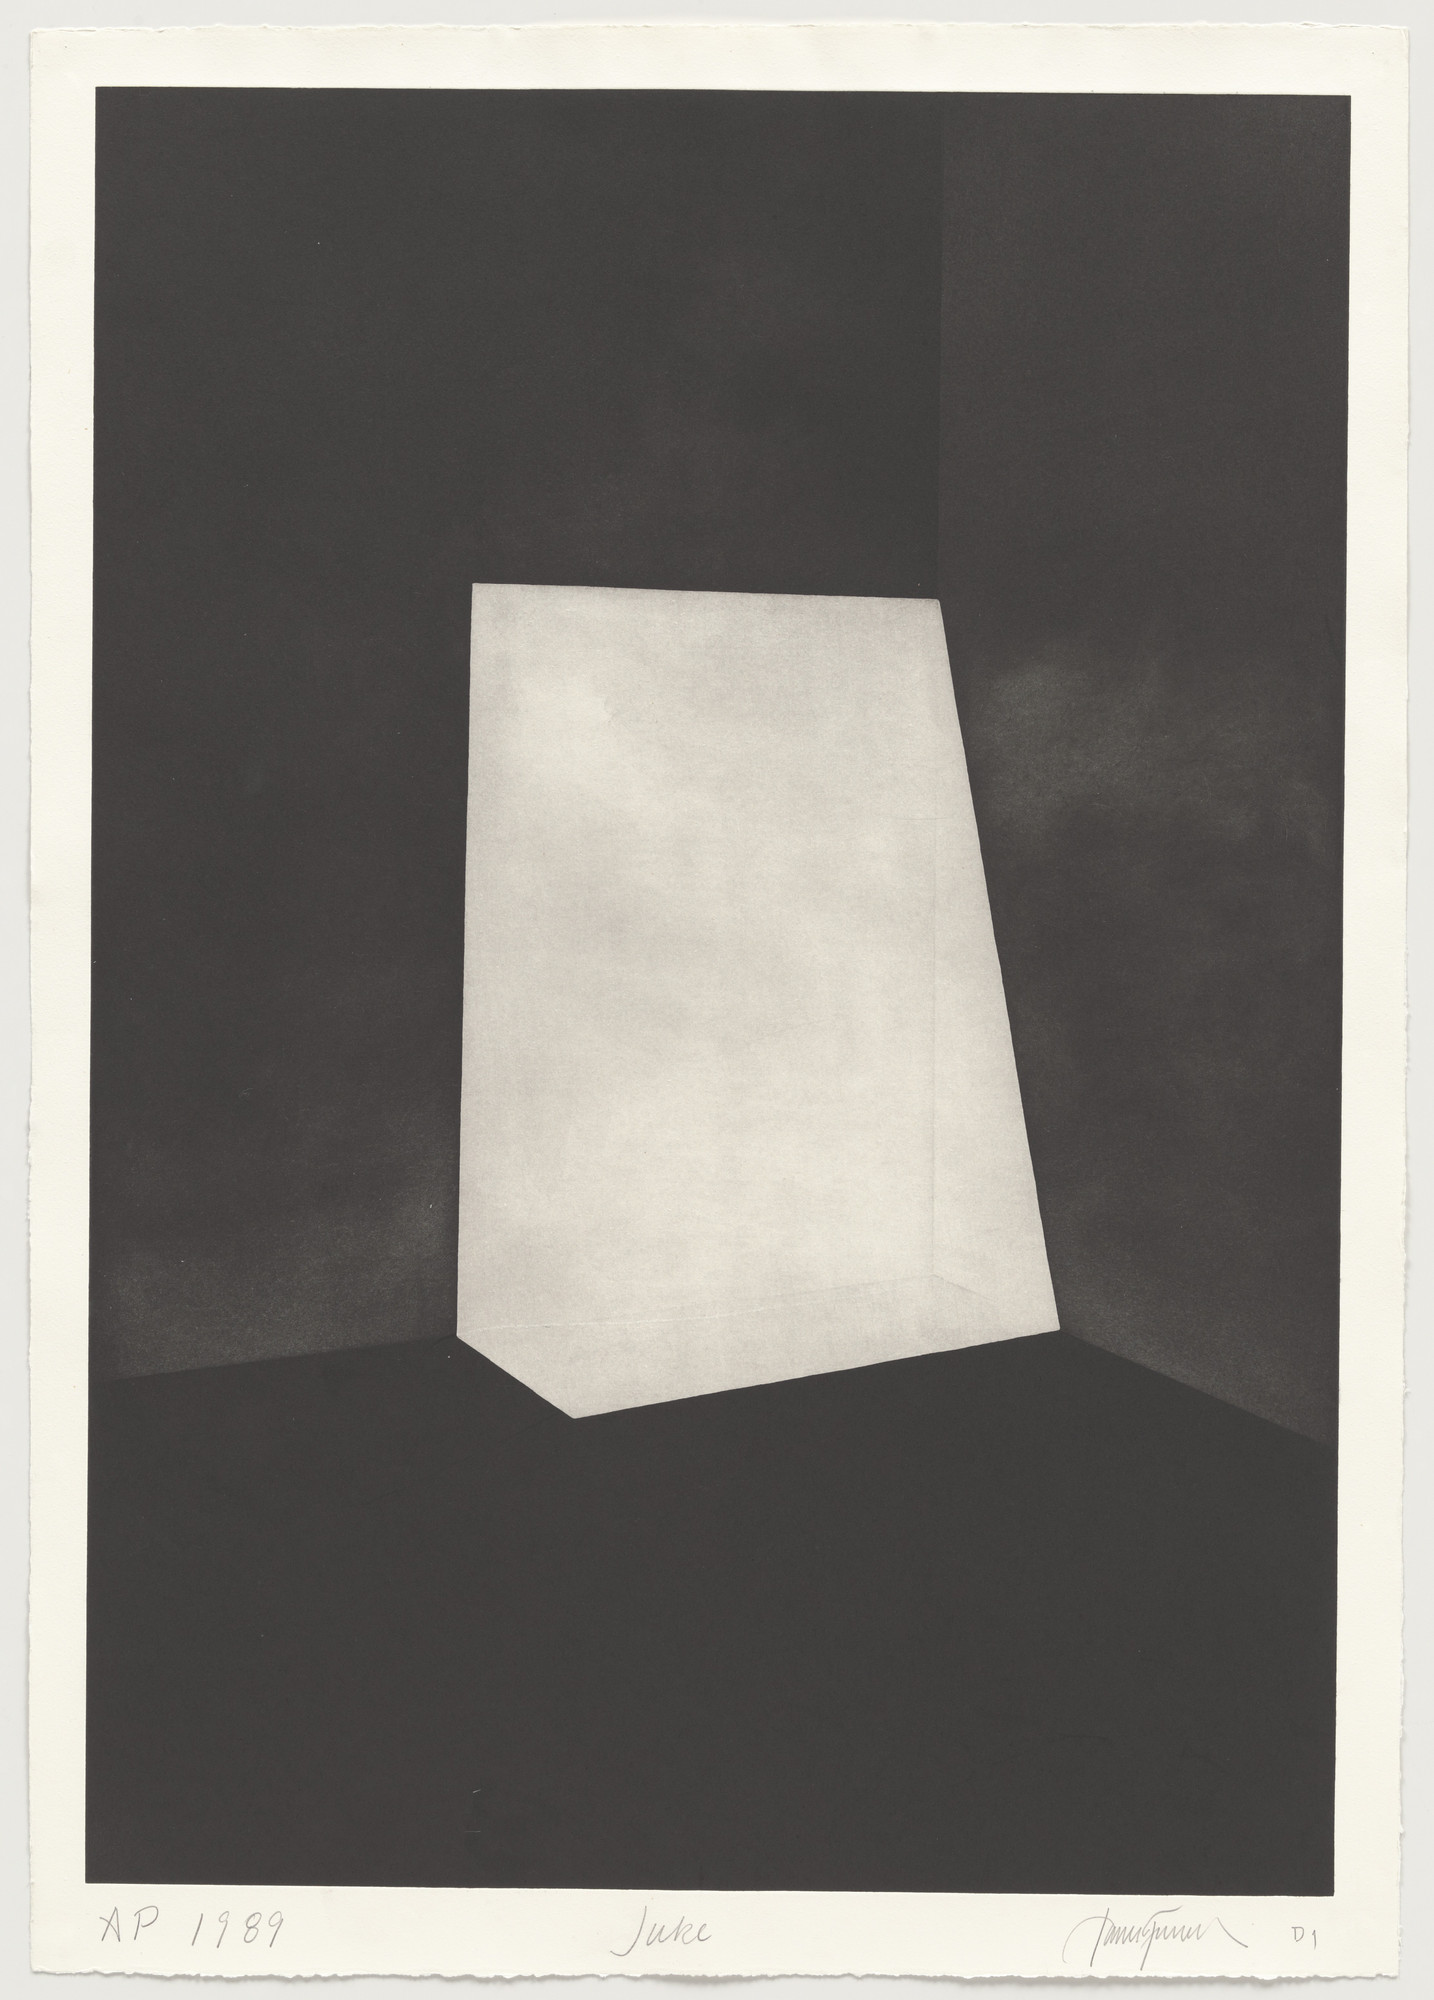 James Turrell. Juke from First Light. 1989-90